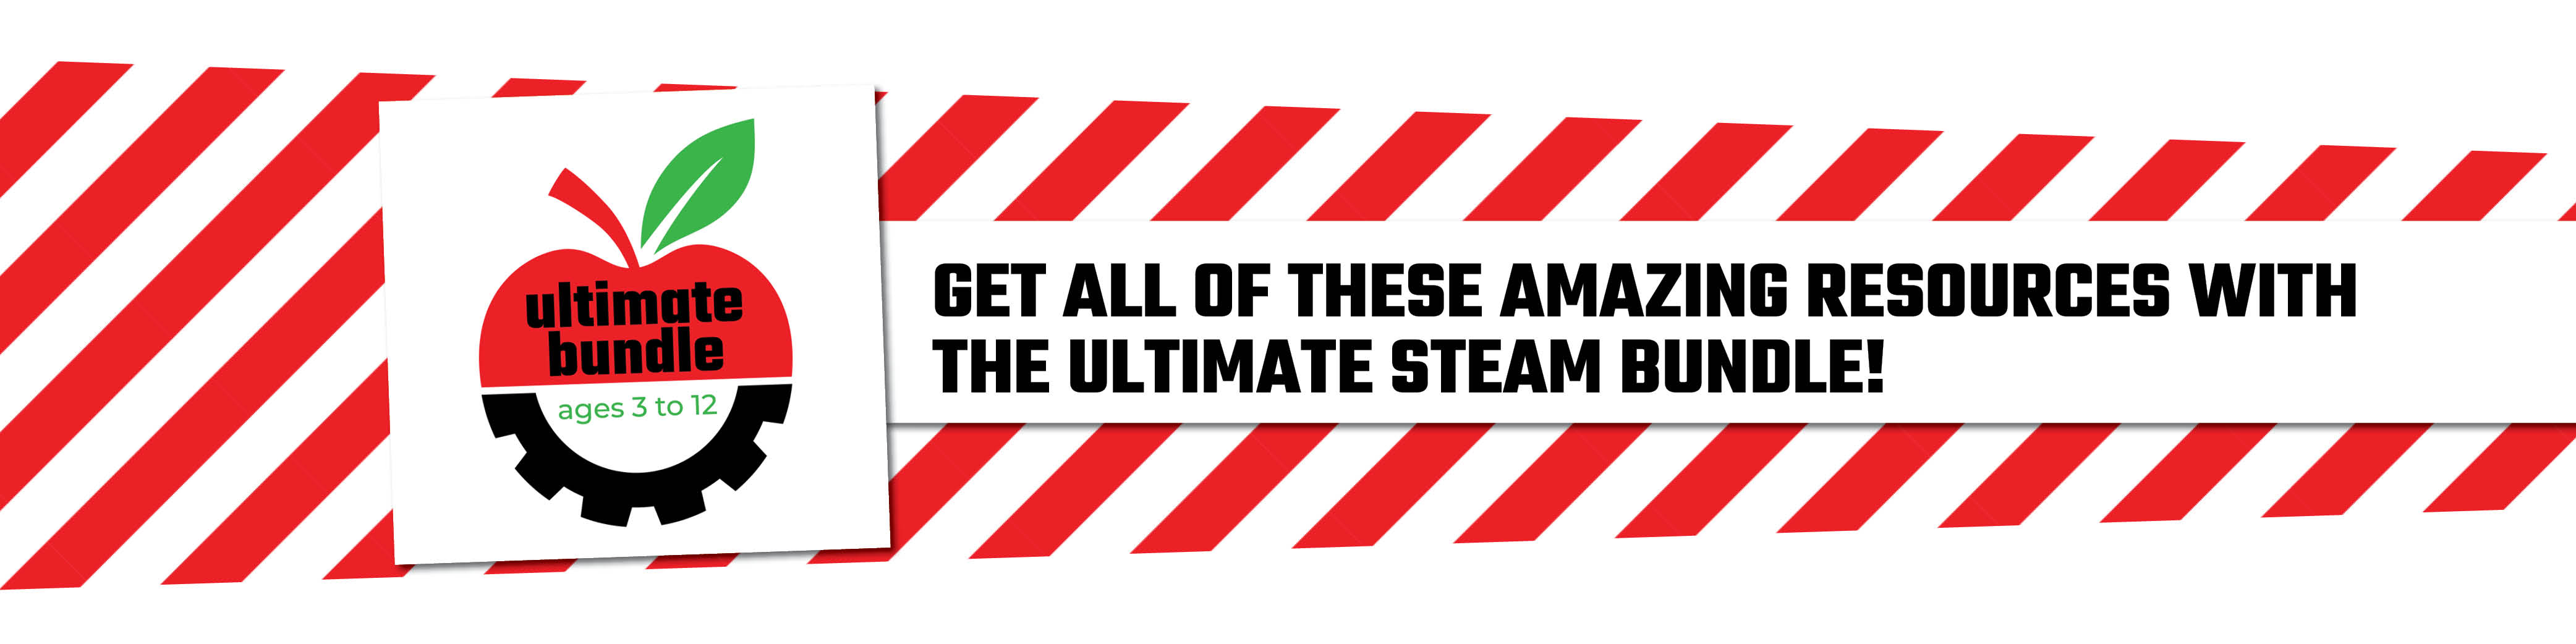 Get all of these amazing resources with the ultimate steam bundle 2000x400